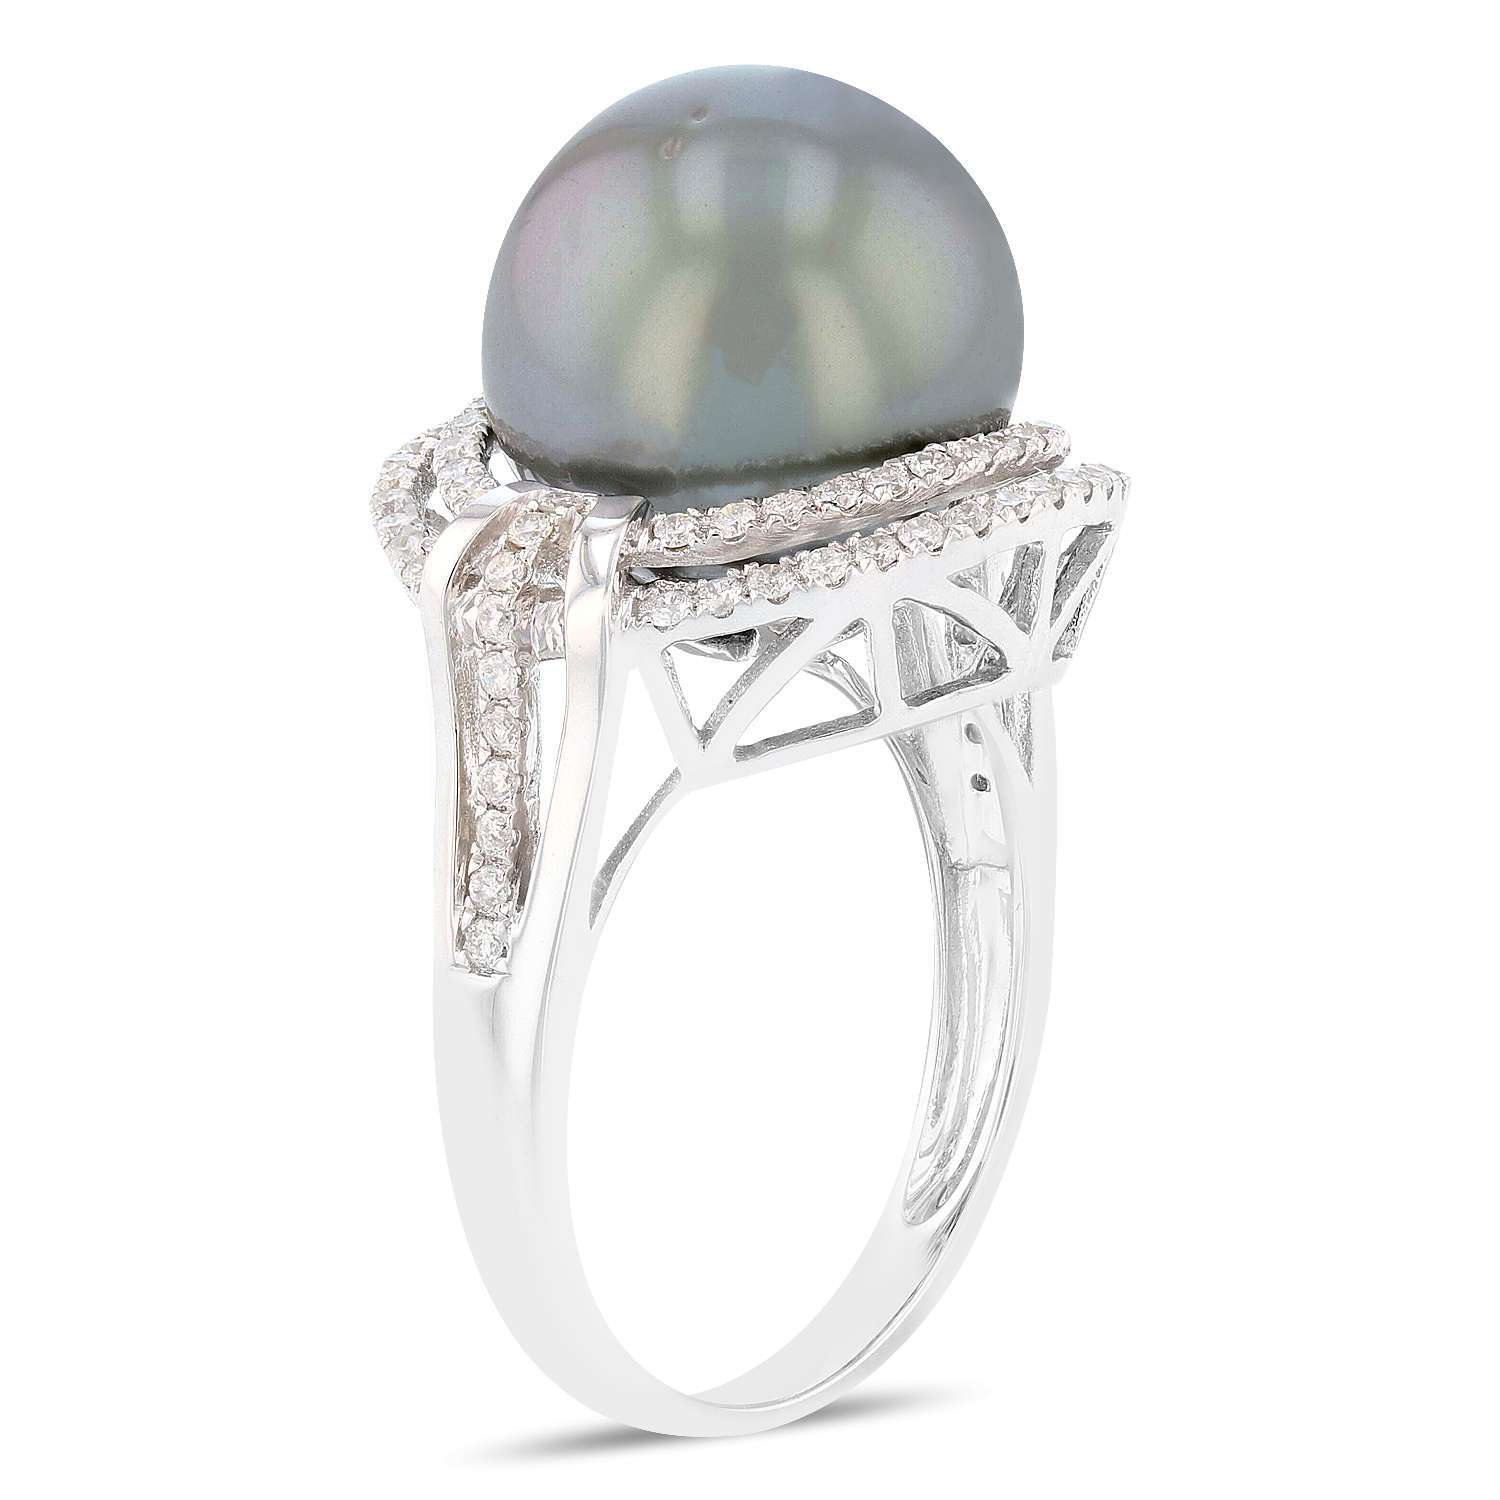 12.5mm Tahitian Culdtured Pearl and 0.45ctw Diamond 18K White Gold Ring